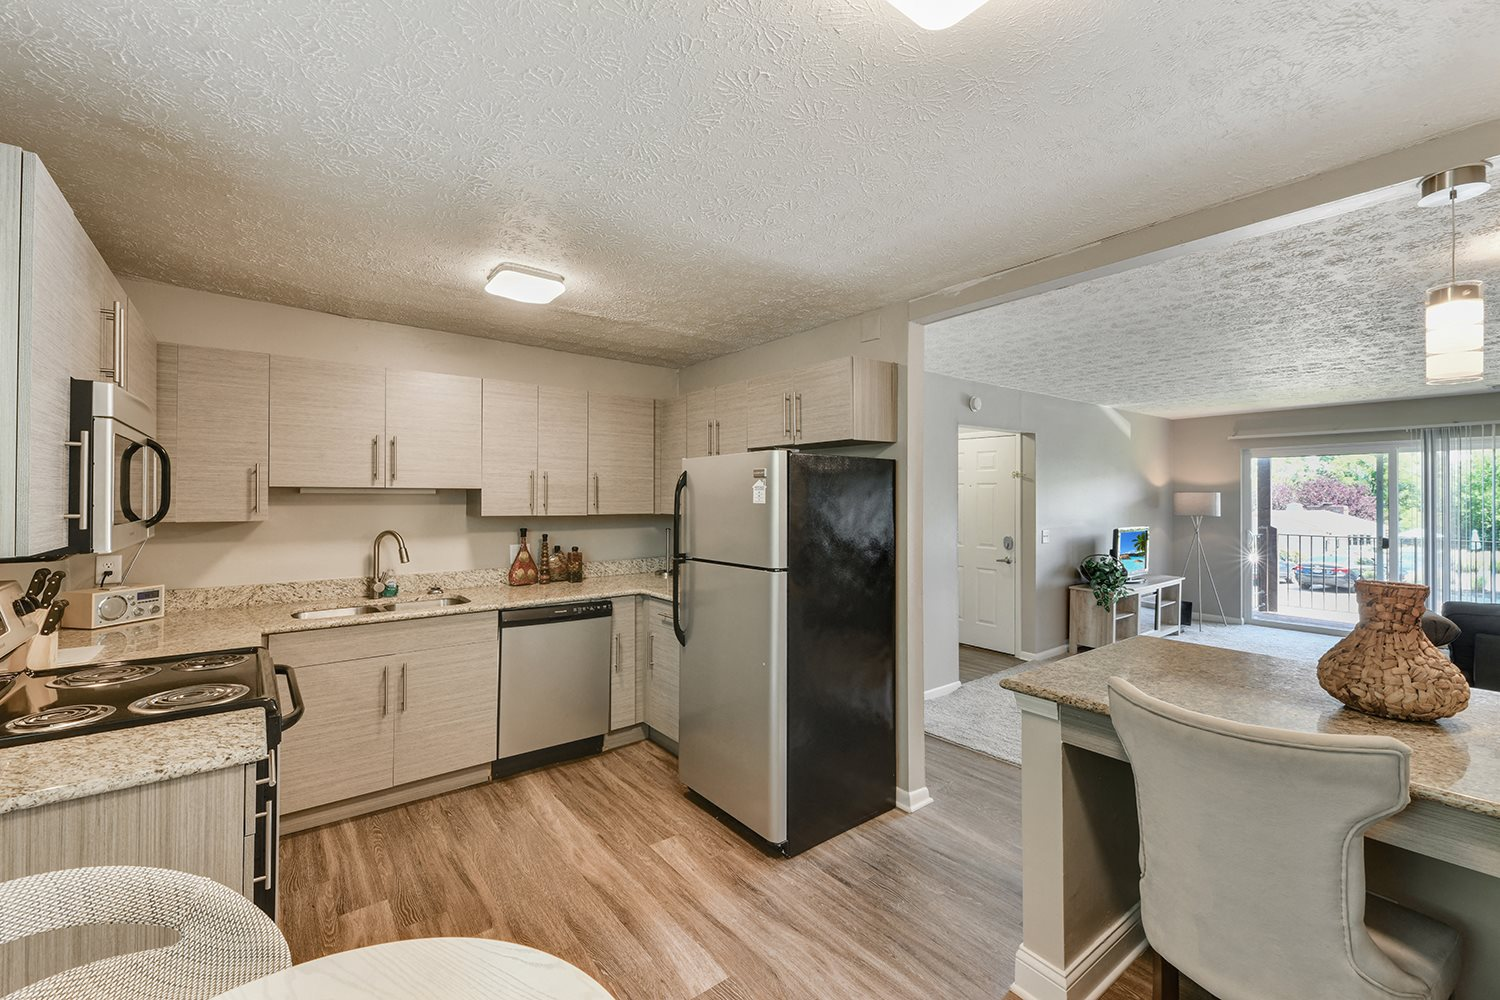 Fully Equipped Kitchen With Modern Appliances at Heritage Hill Estates Apartments, Ohio